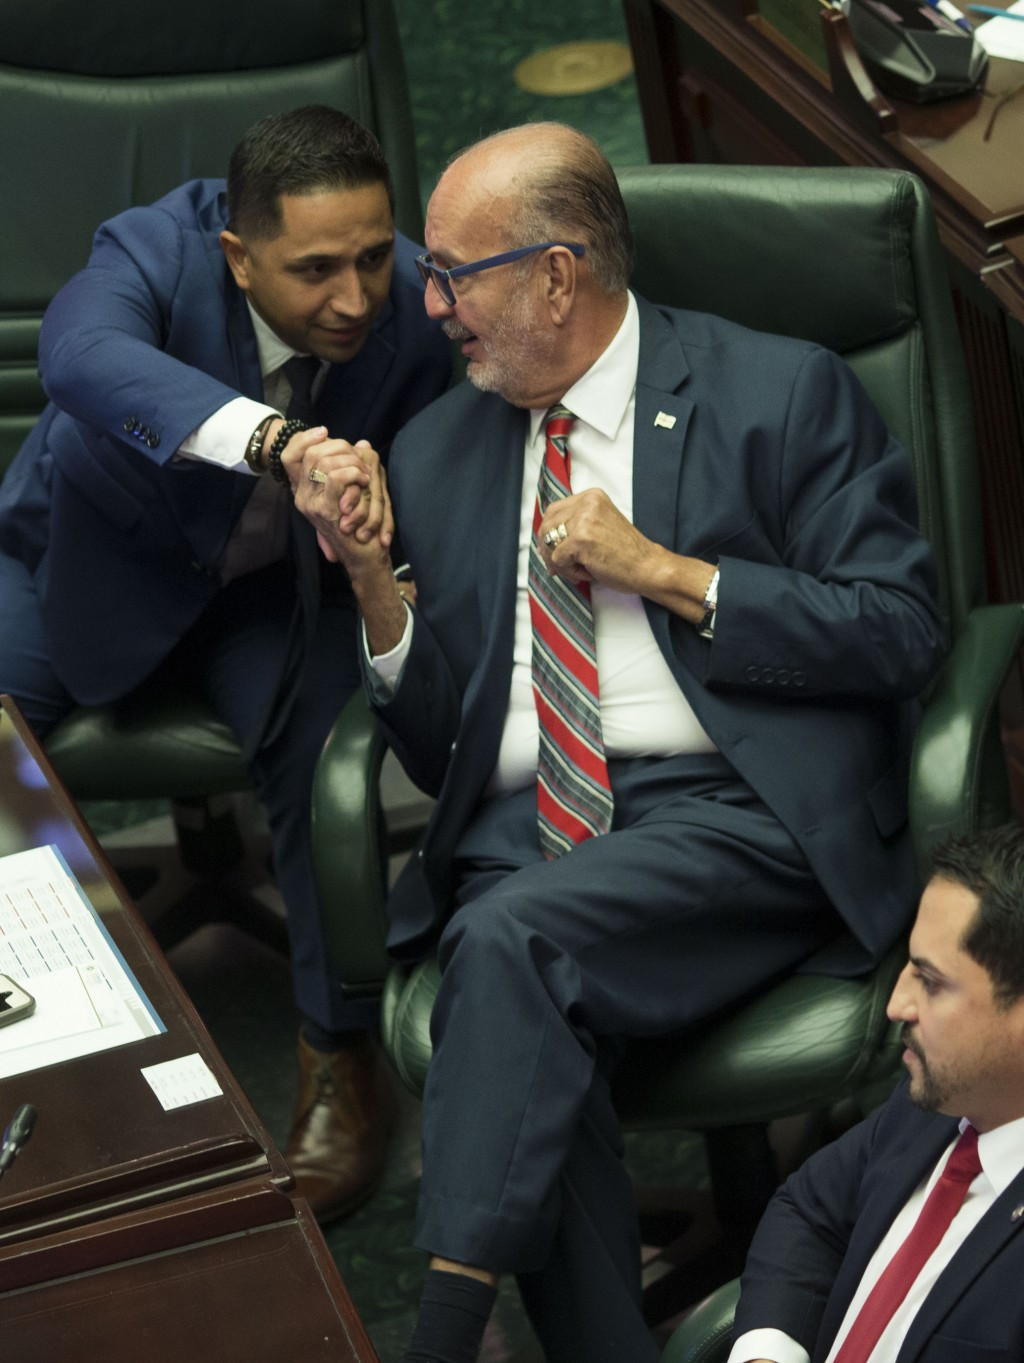 """Luis """"Junior"""" Perez, center, shakes hands with fellow lawmakers Urayoan Hernandez as members of Puerto Rico's House of Representatives celebrate their"""